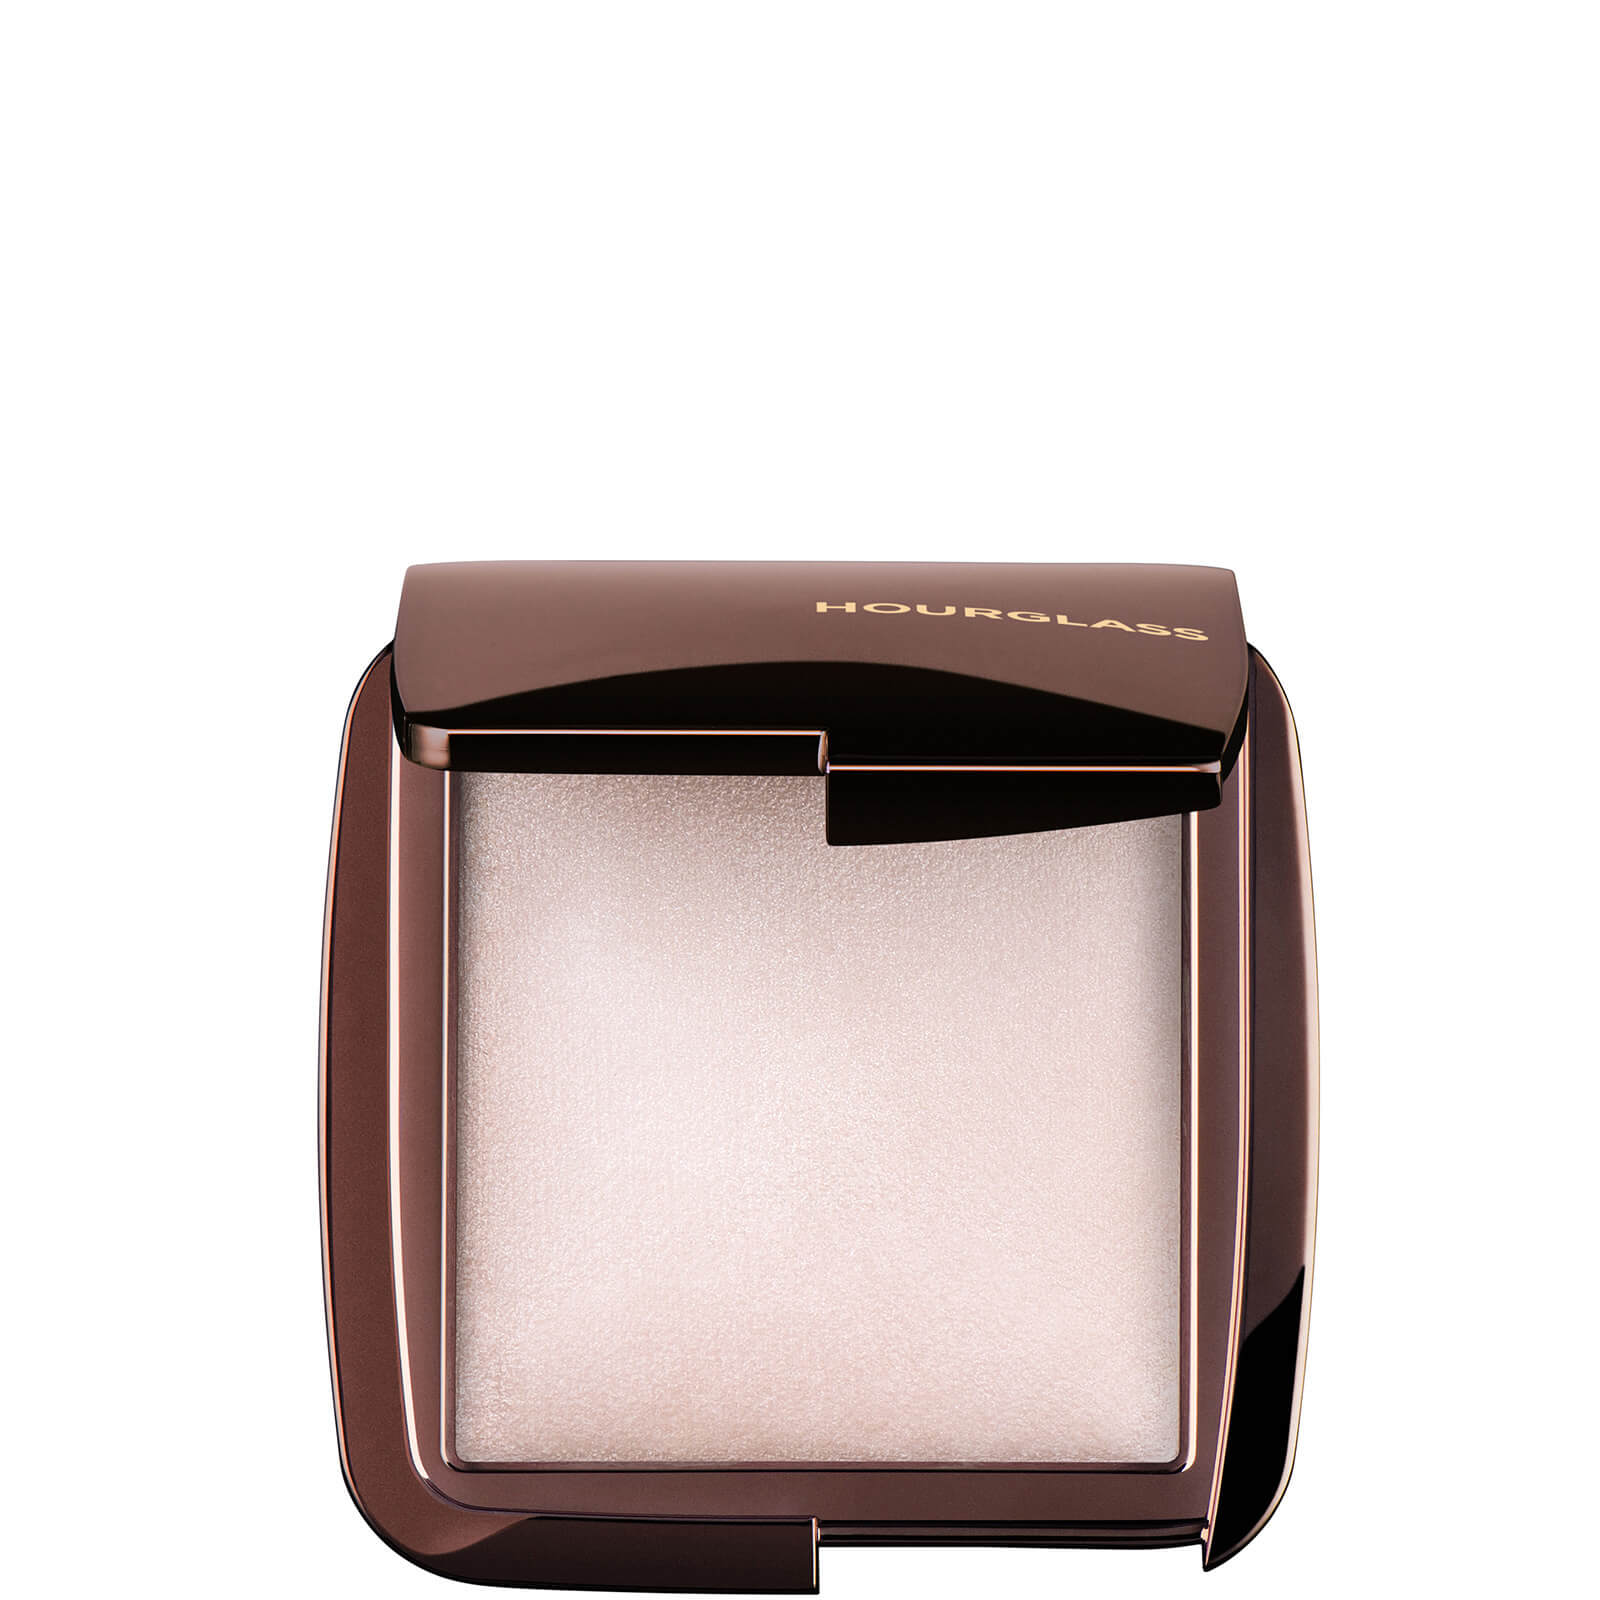 Hourglass Ambient Lighting Powder 10g (Various Shades) - Ethereal Light